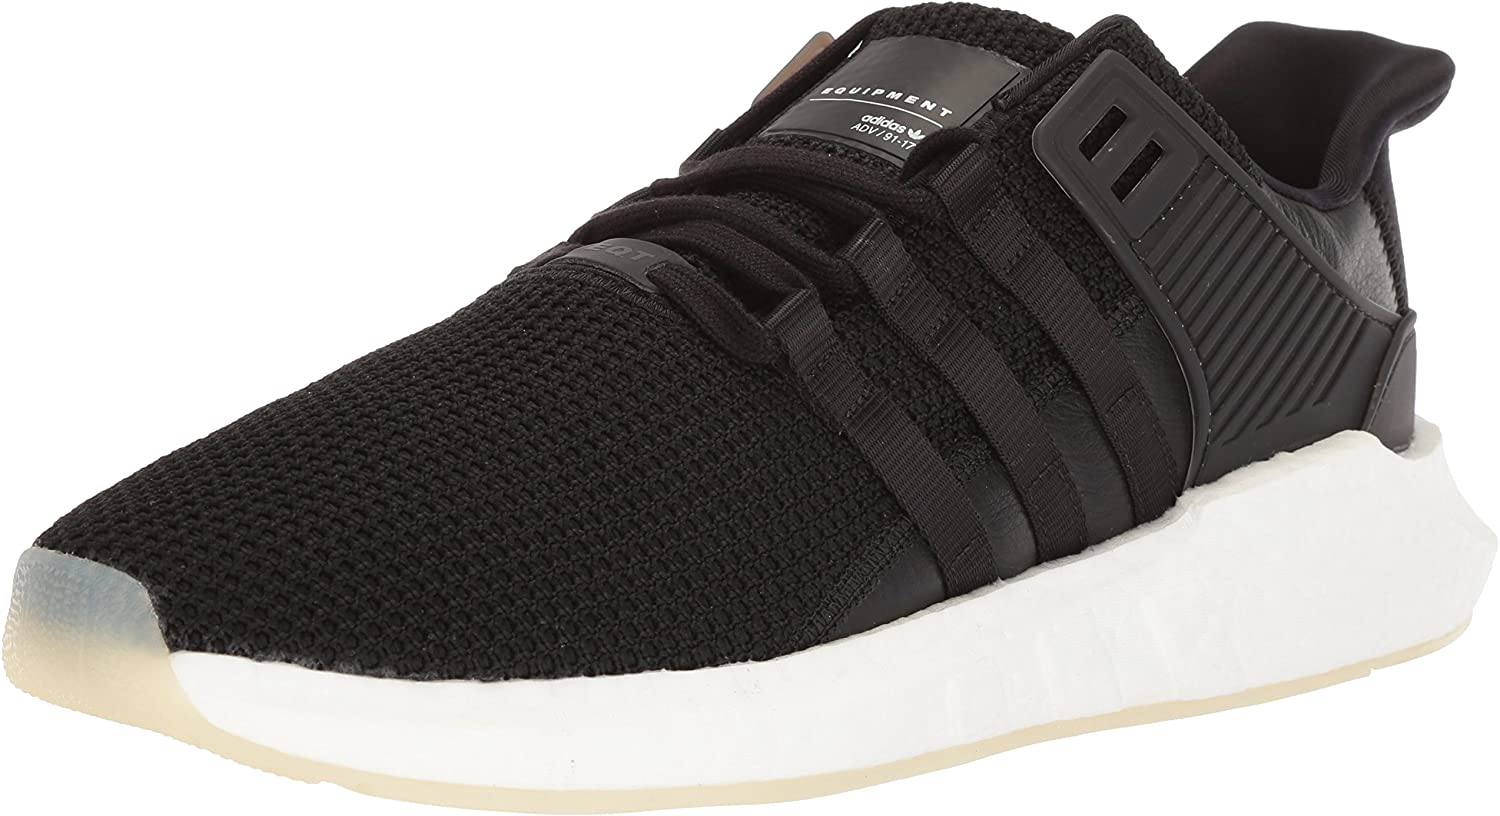 adidas Originals Men s EQT Support 93 17 Running Shoe, core Black core Black White, 13 M US